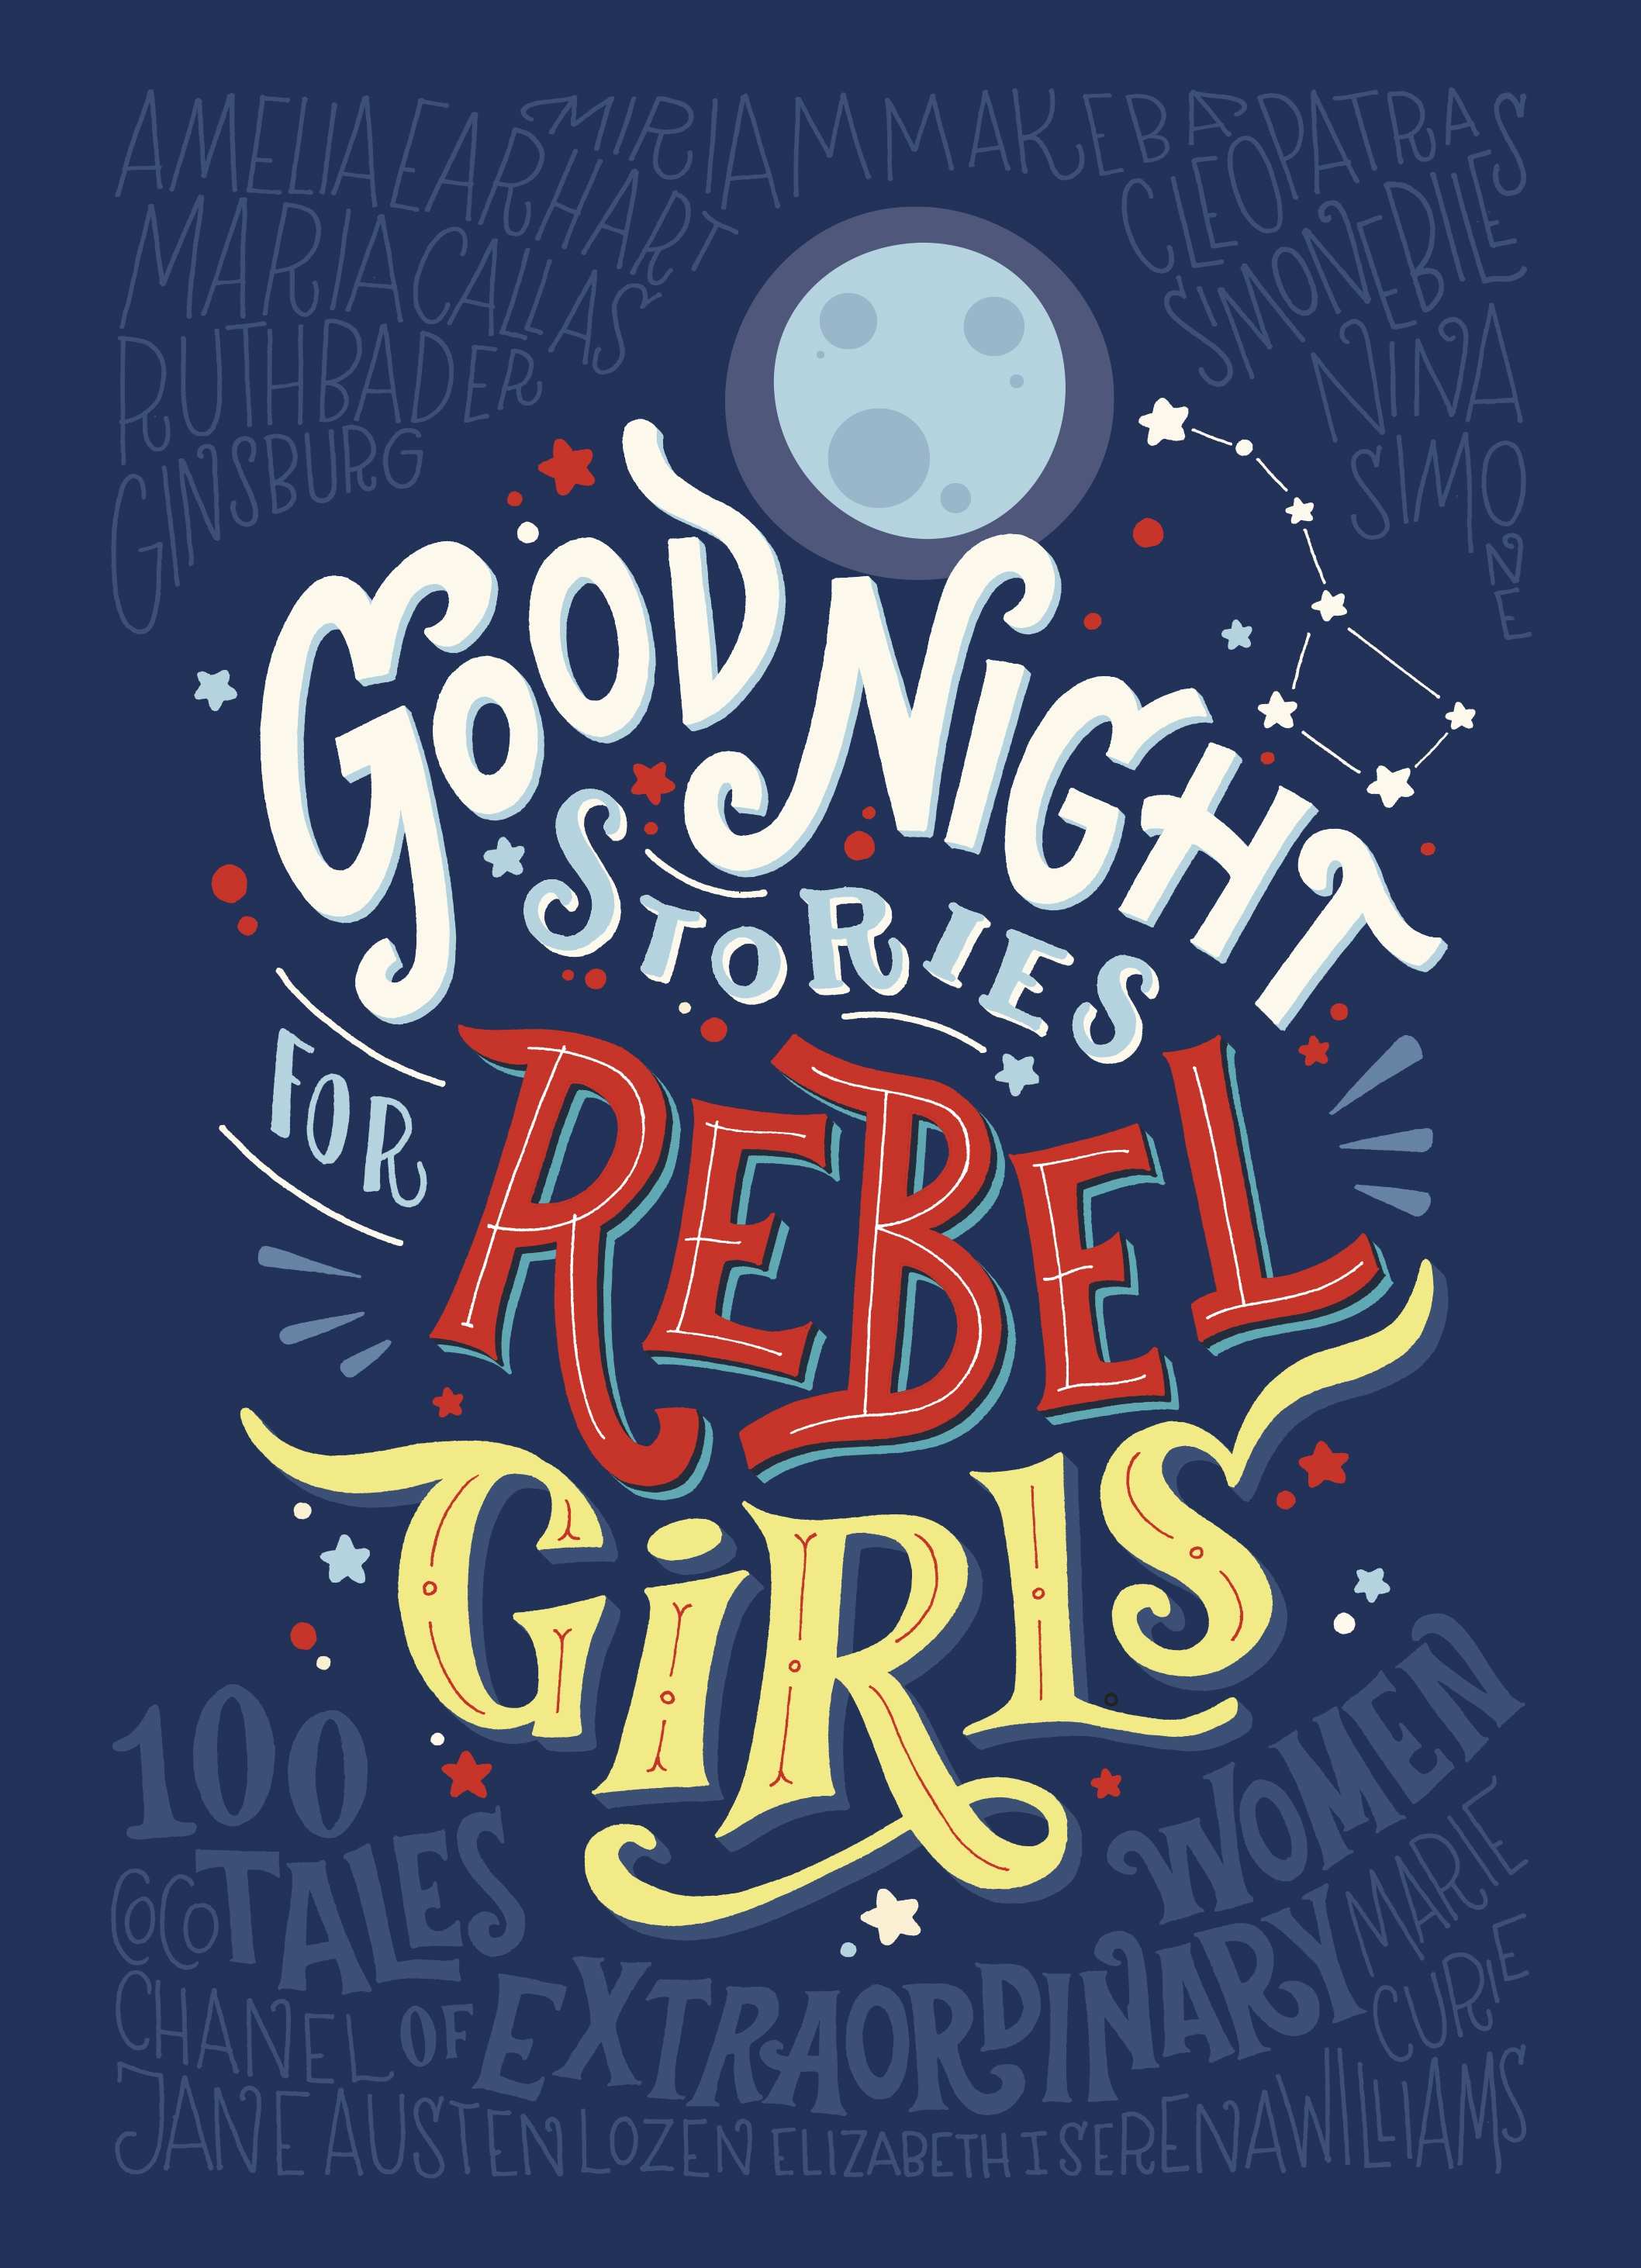 Good Night Stories for Rebel Girls by Elena Favilli and Francesca Cavallo (Particular Books)